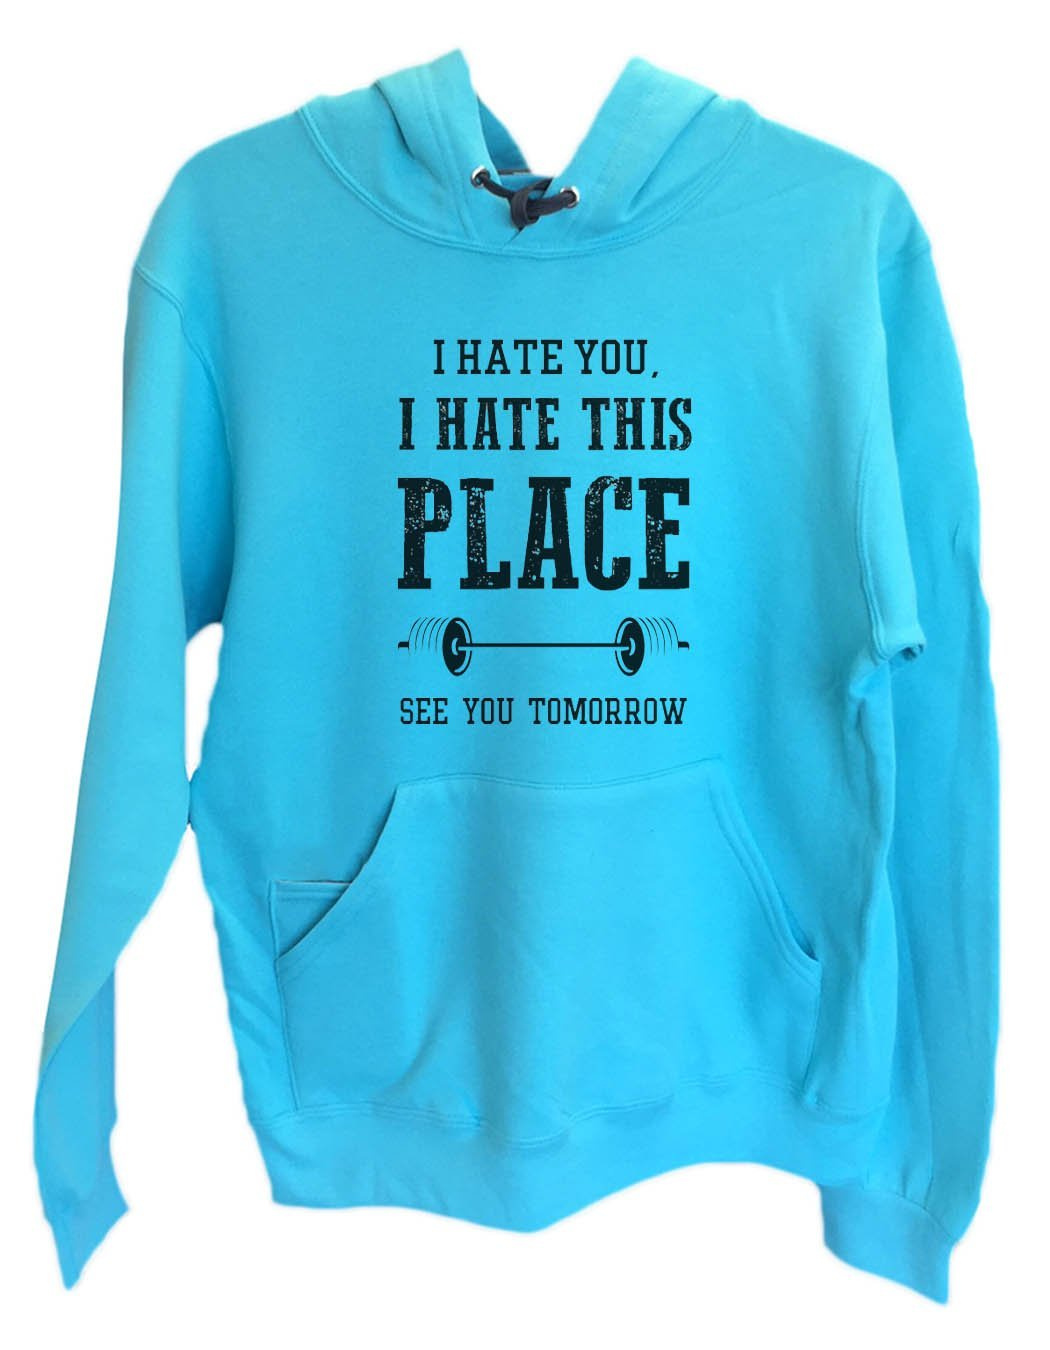 UNISEX HOODIE - I hate you, I hate this place See you tomorrow - FUNNY MENS AND WOMENS HOODED SWEATSHIRTS - 857 Funny Shirt Small / Turquoise